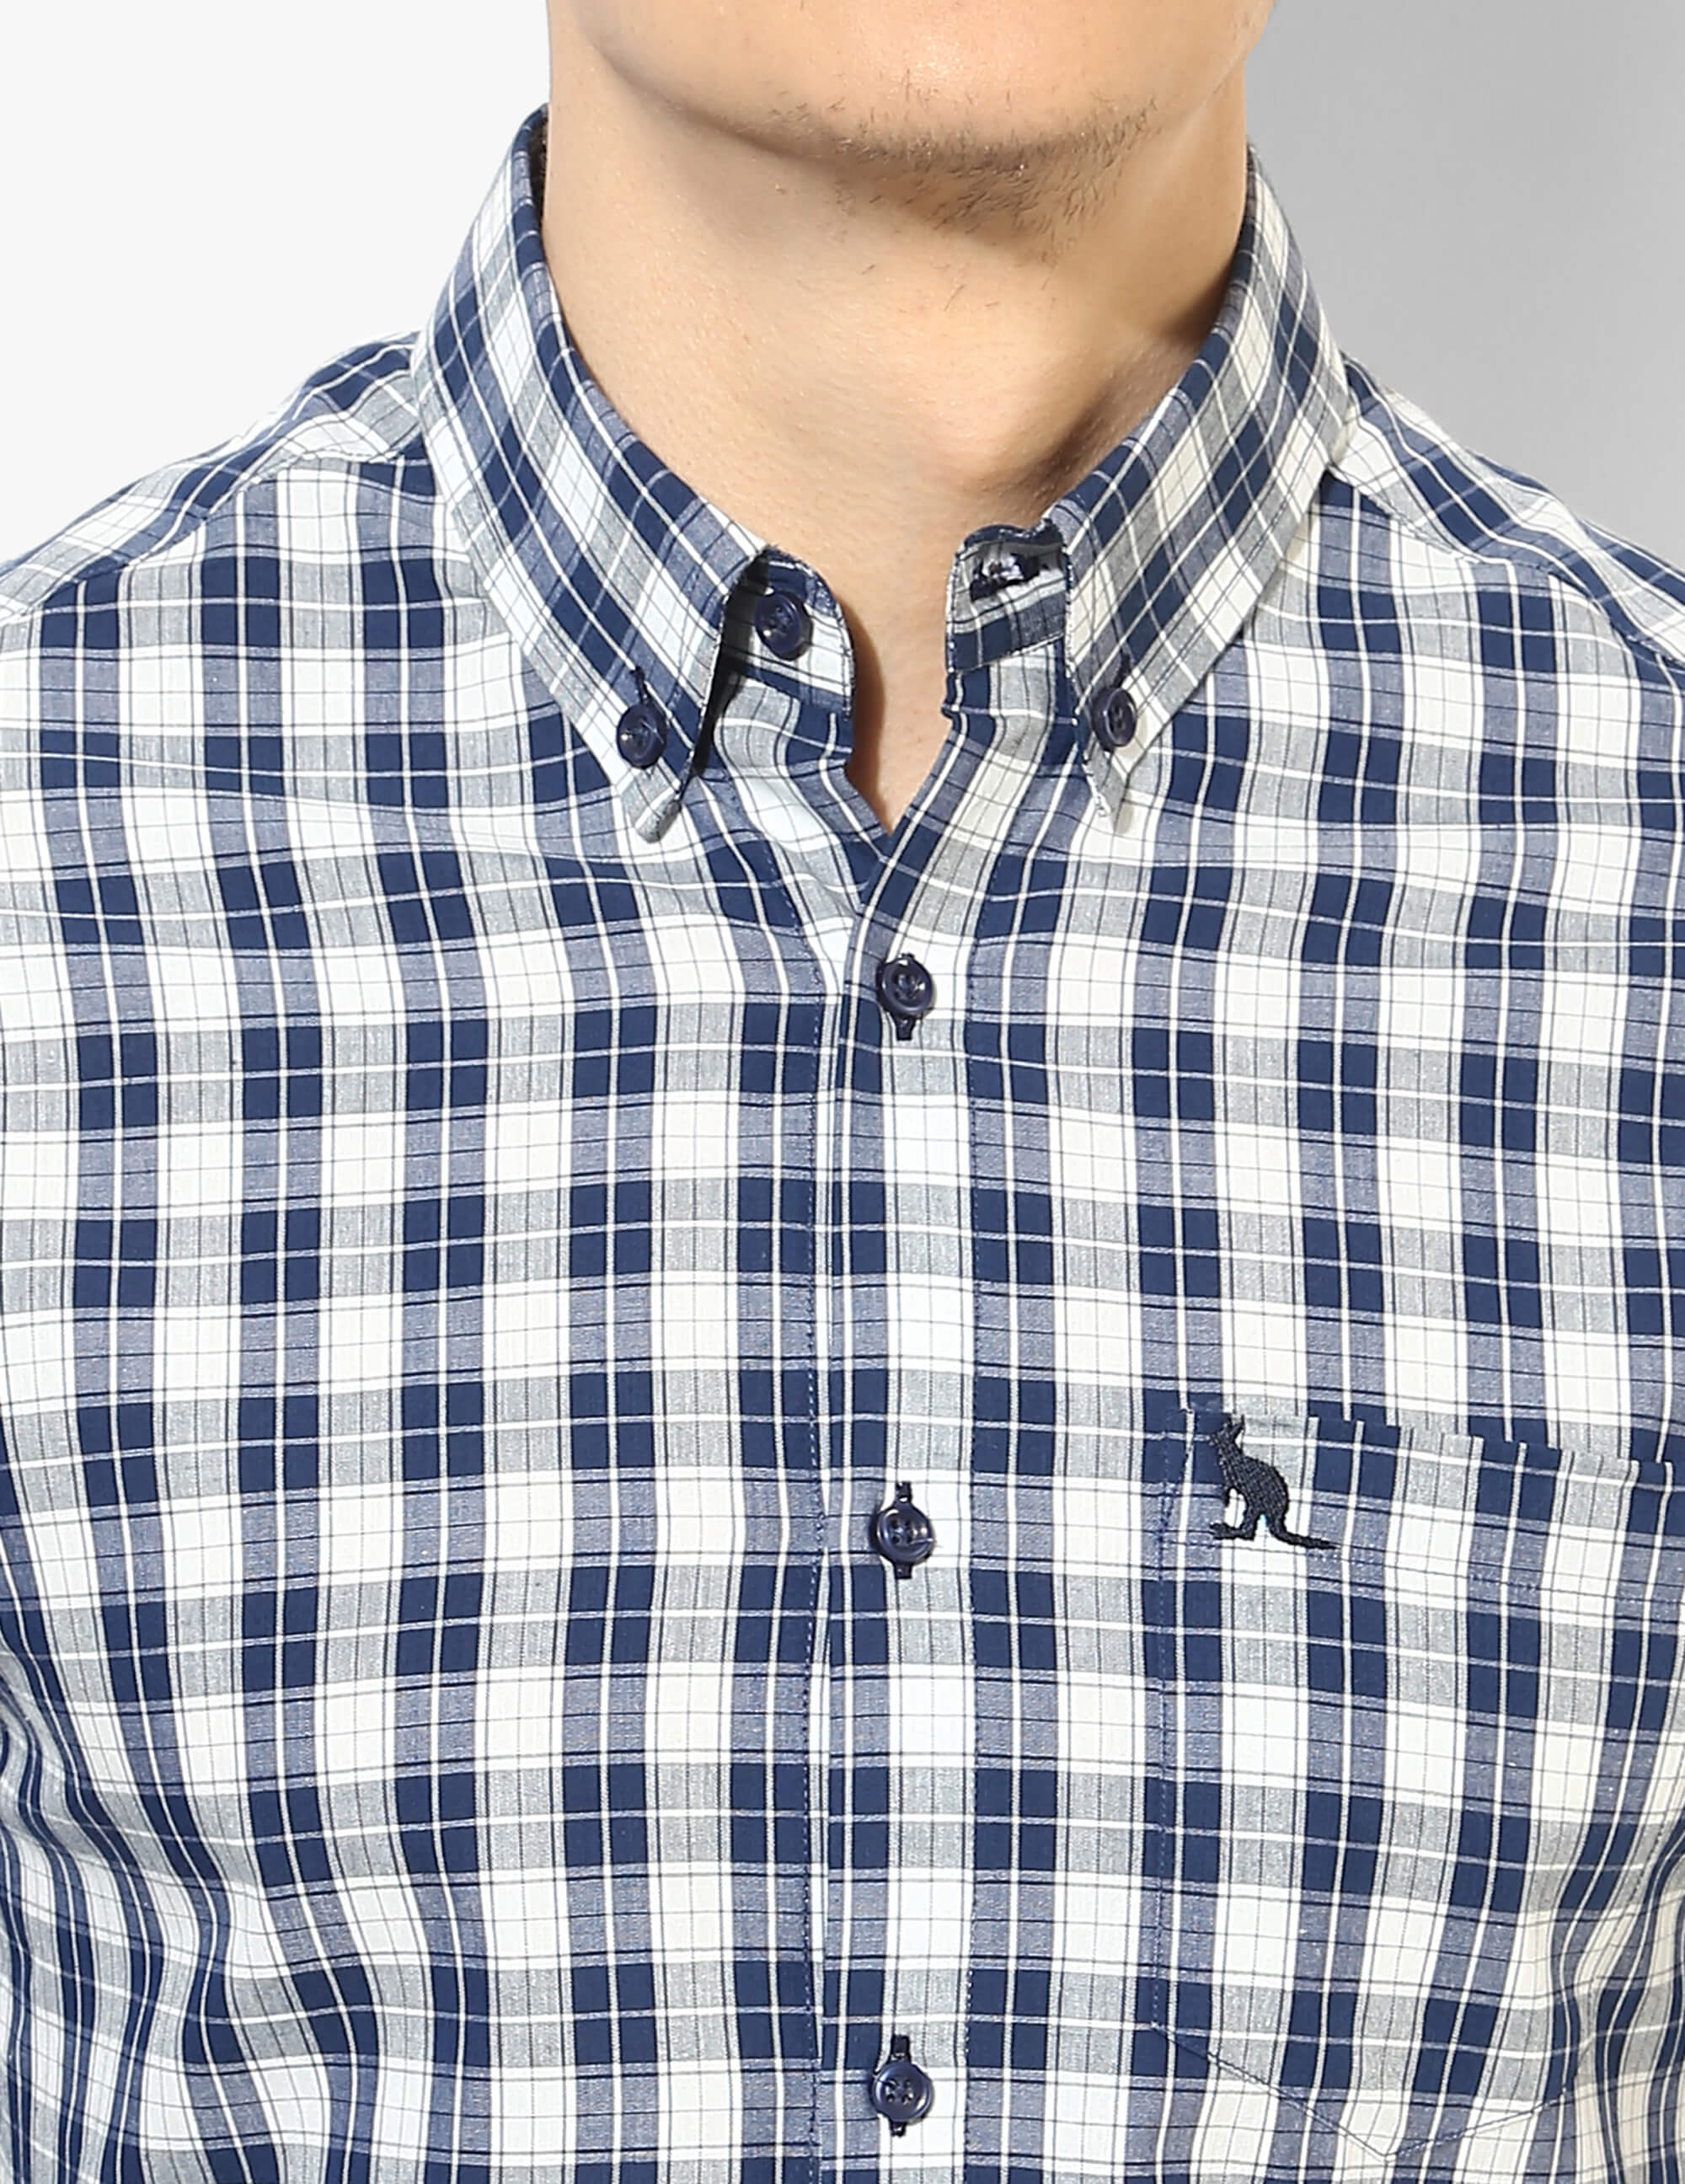 Stout Blue and White Check Shirt - Tuck N Stitch